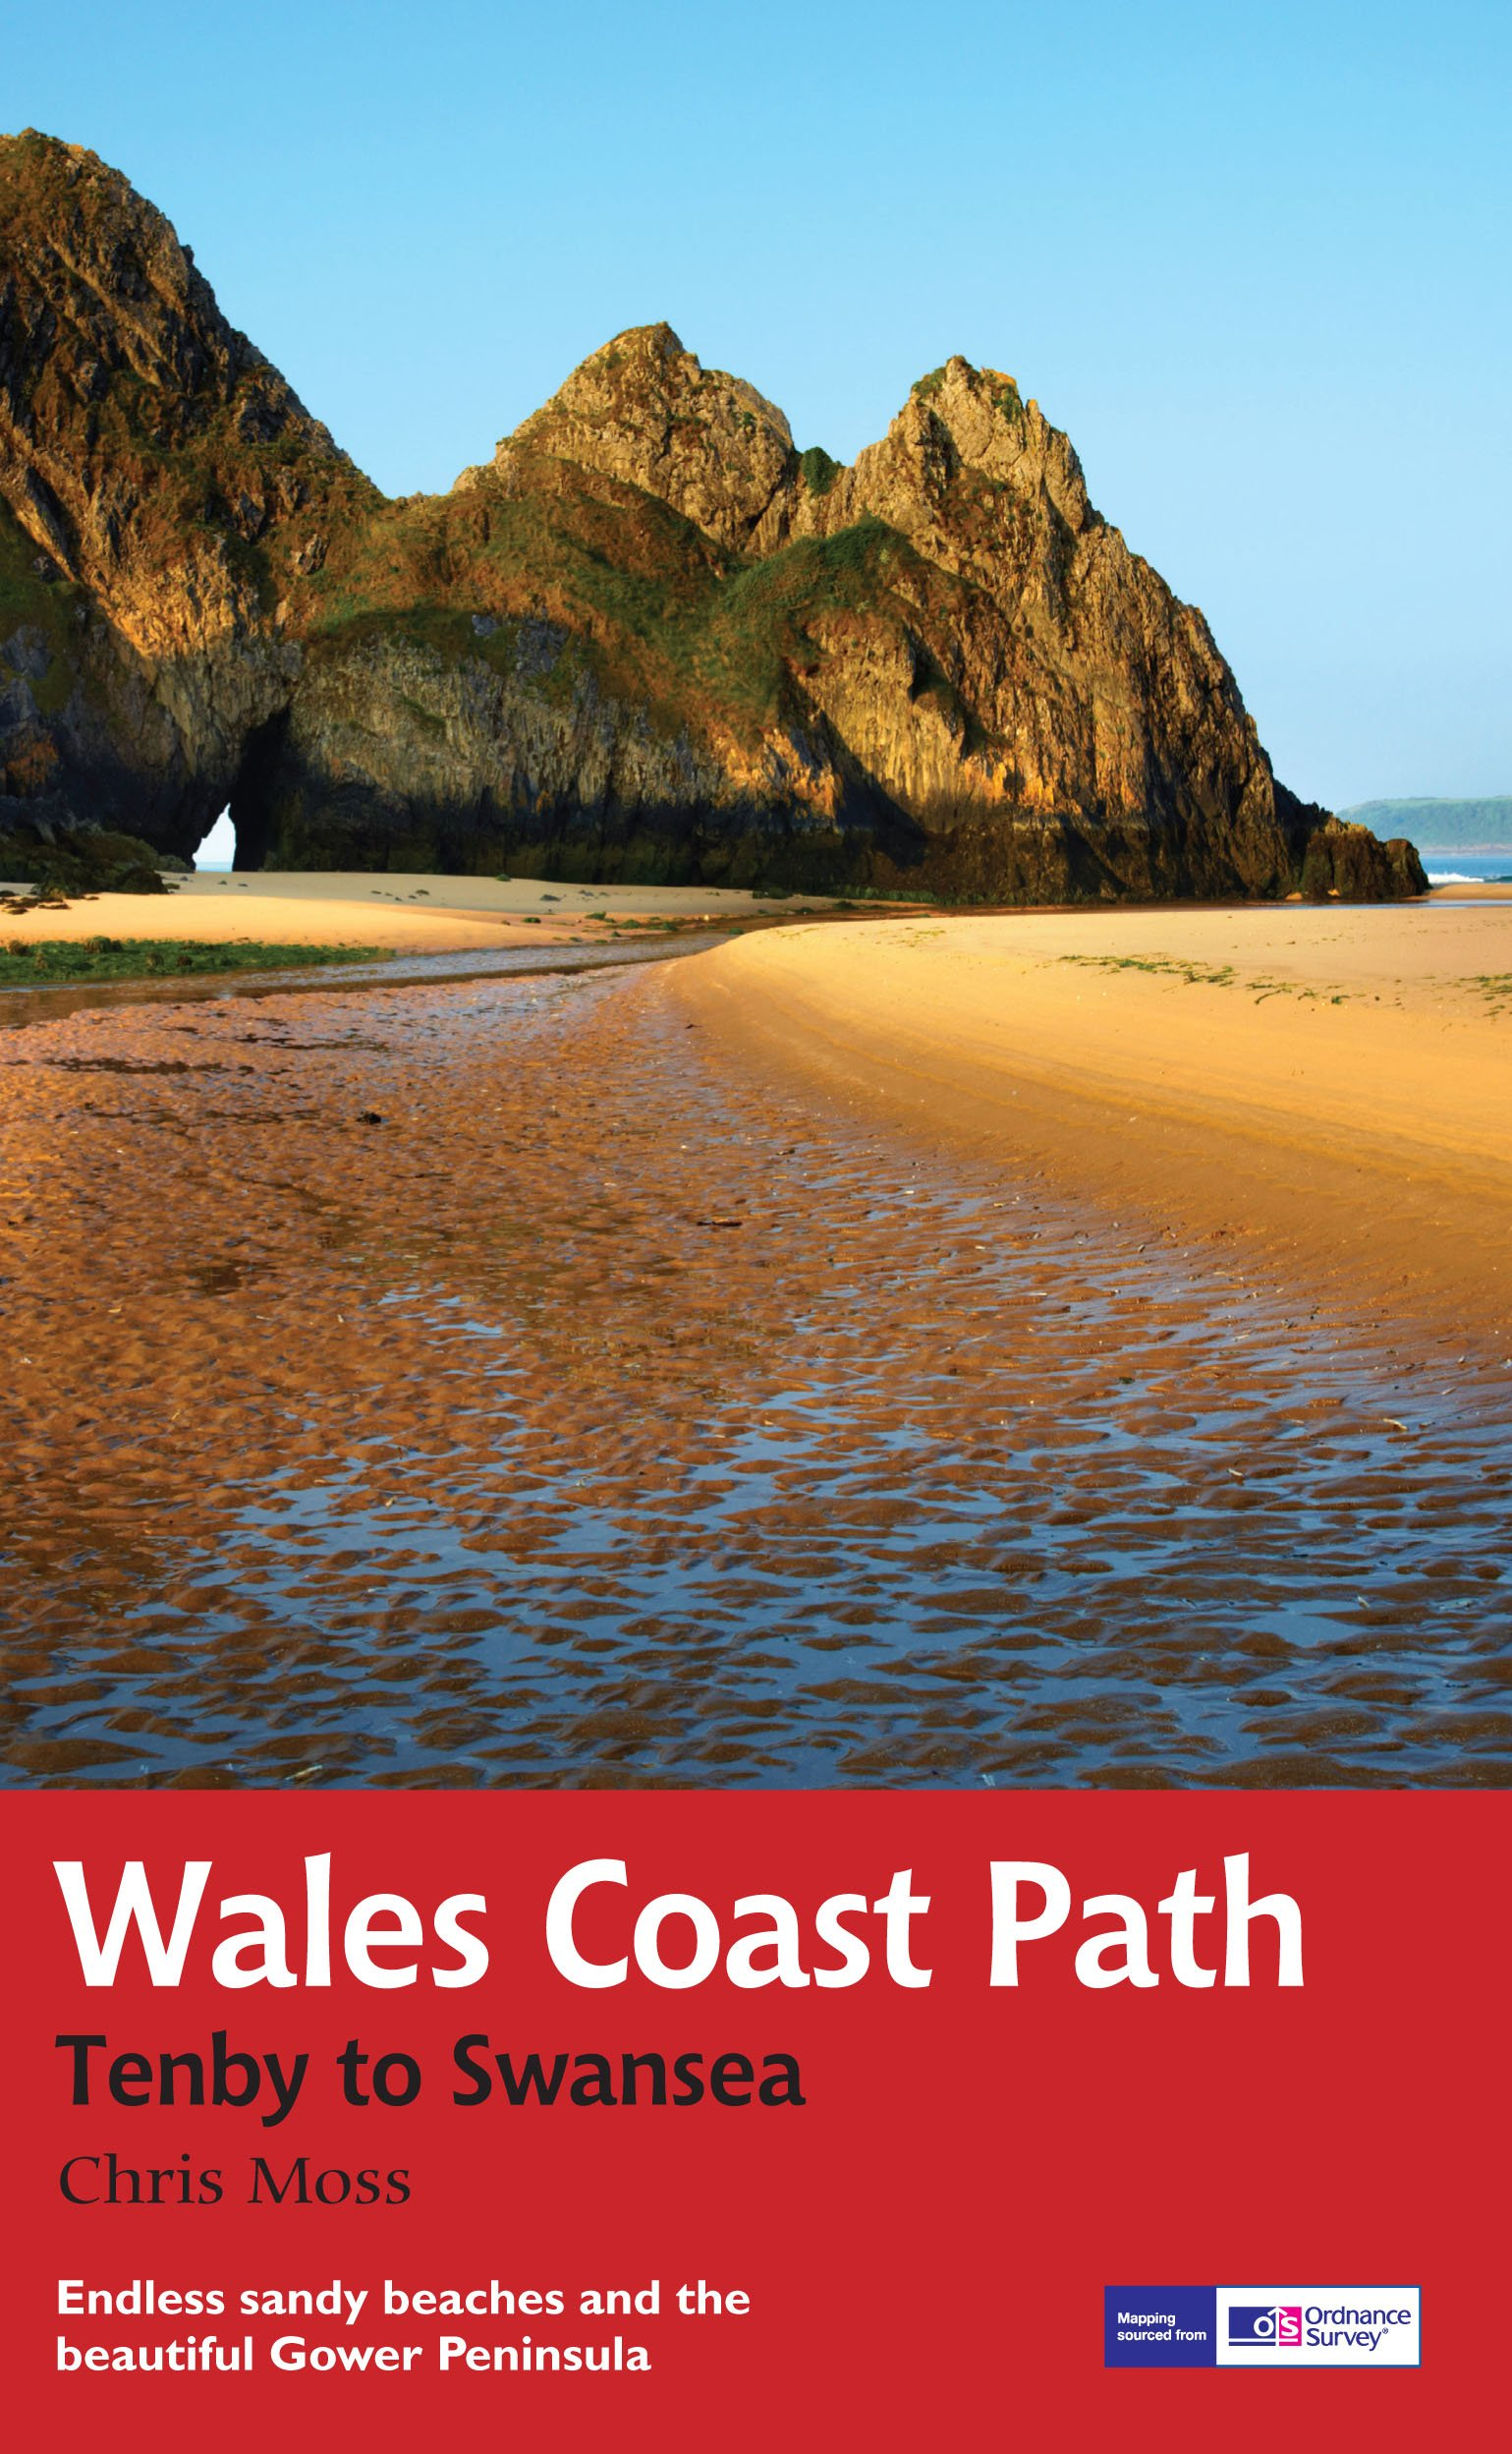 Wales Coast Path TenbySwansea Trail Guide National Trail Guide